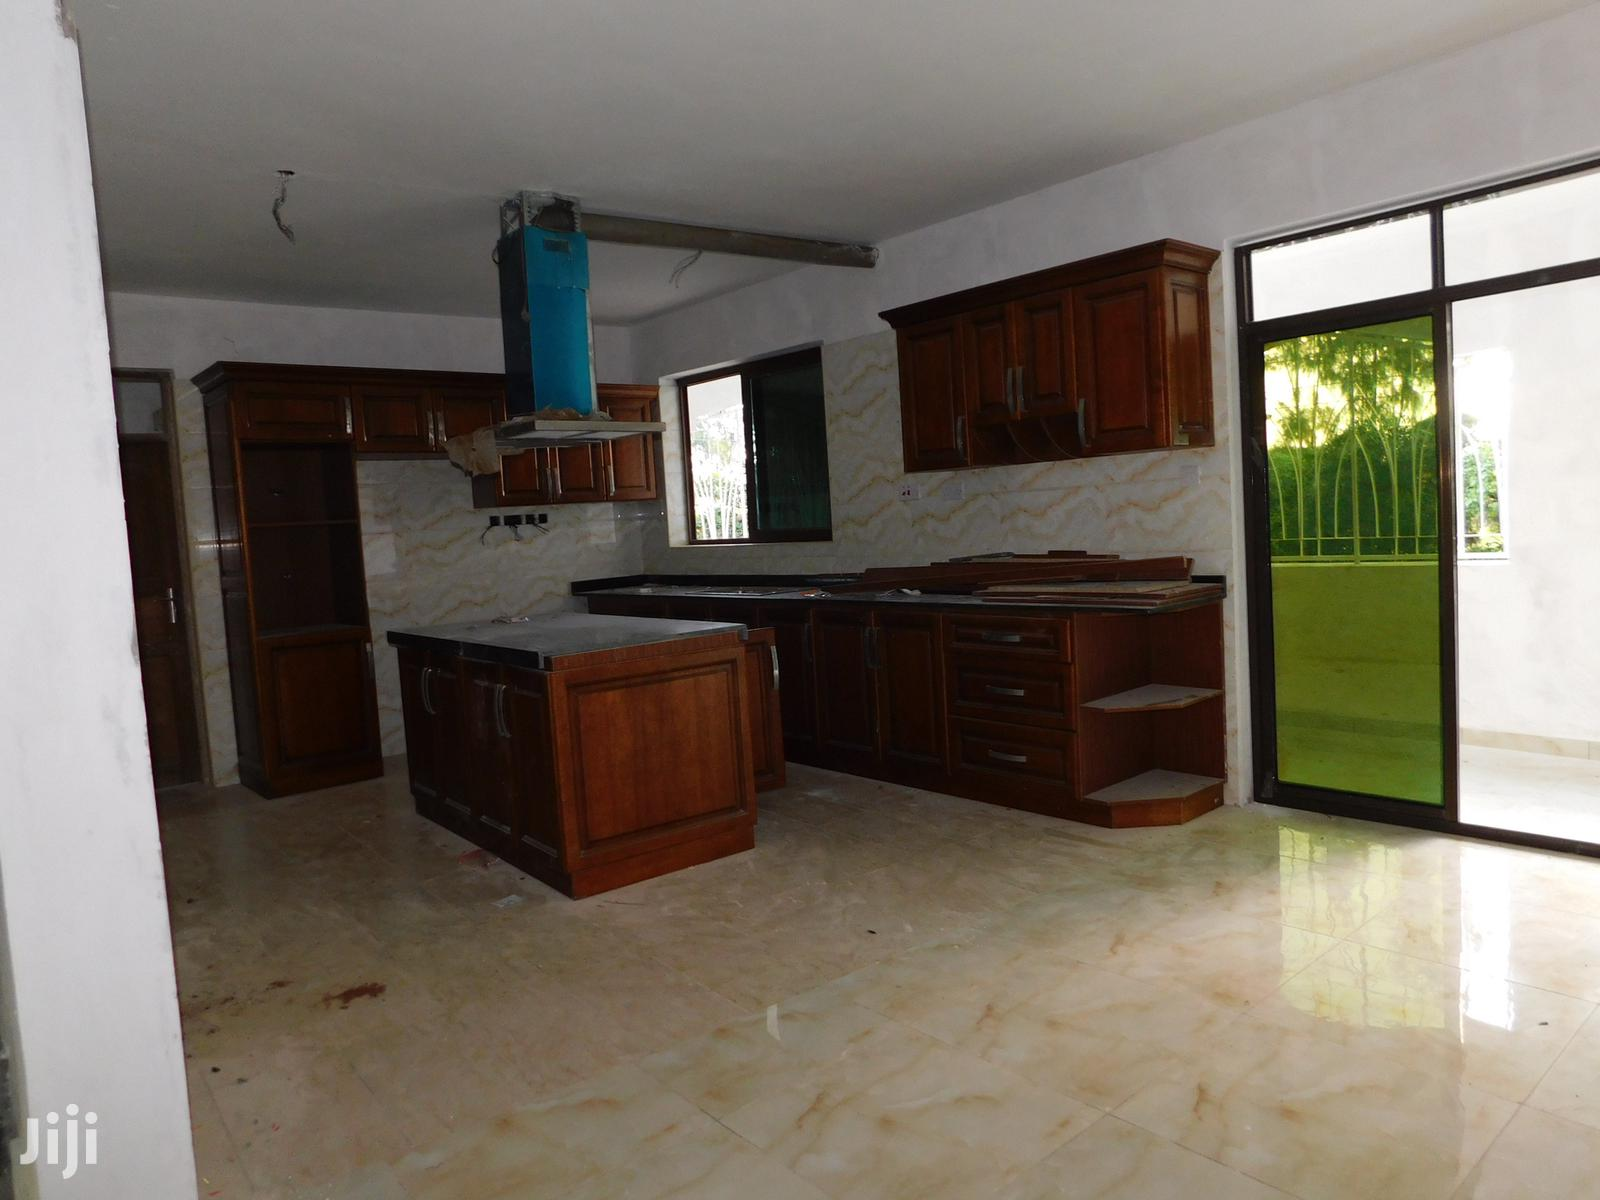 4 Bedroom Spacious House On Sale Vipingo, Benford Homes | Houses & Apartments For Sale for sale in Shanzu, Mombasa, Kenya